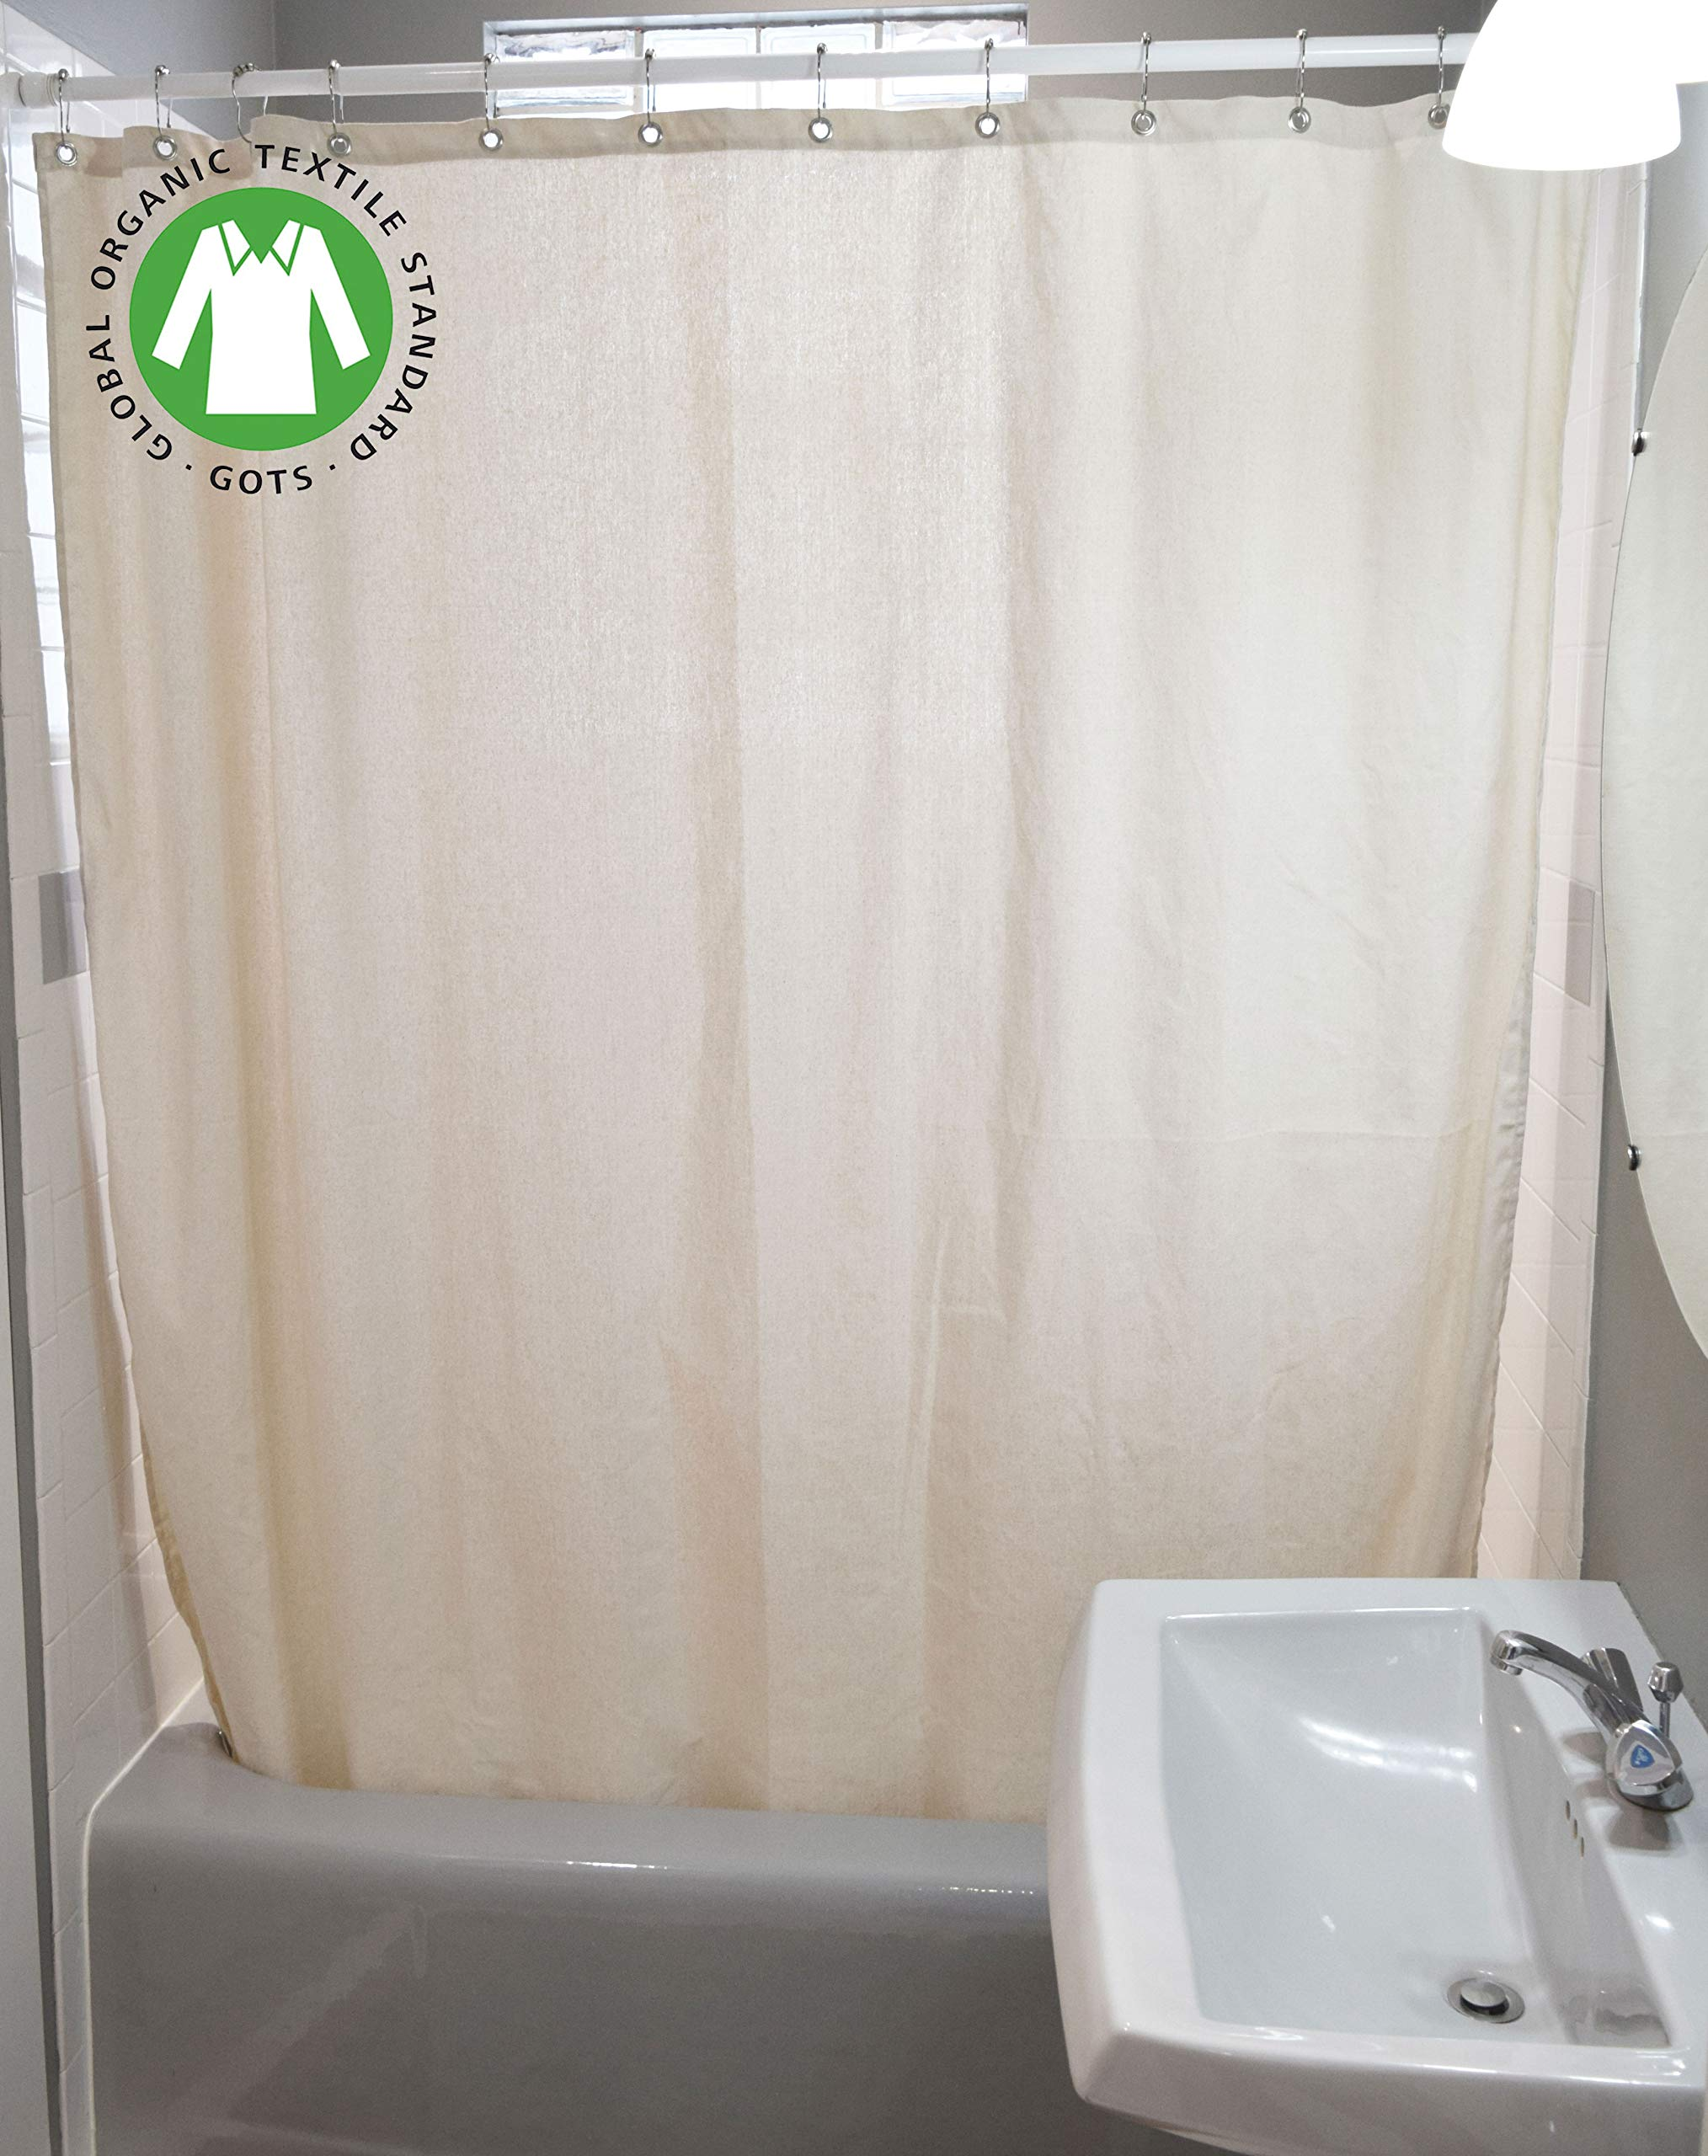 Bean Products Organic Cotton Shower Curtain - 70'' x 74'' - Natural - Also Cotton, Hemp, Linen - Tub, Bath, Stall Sizes - Made in USA